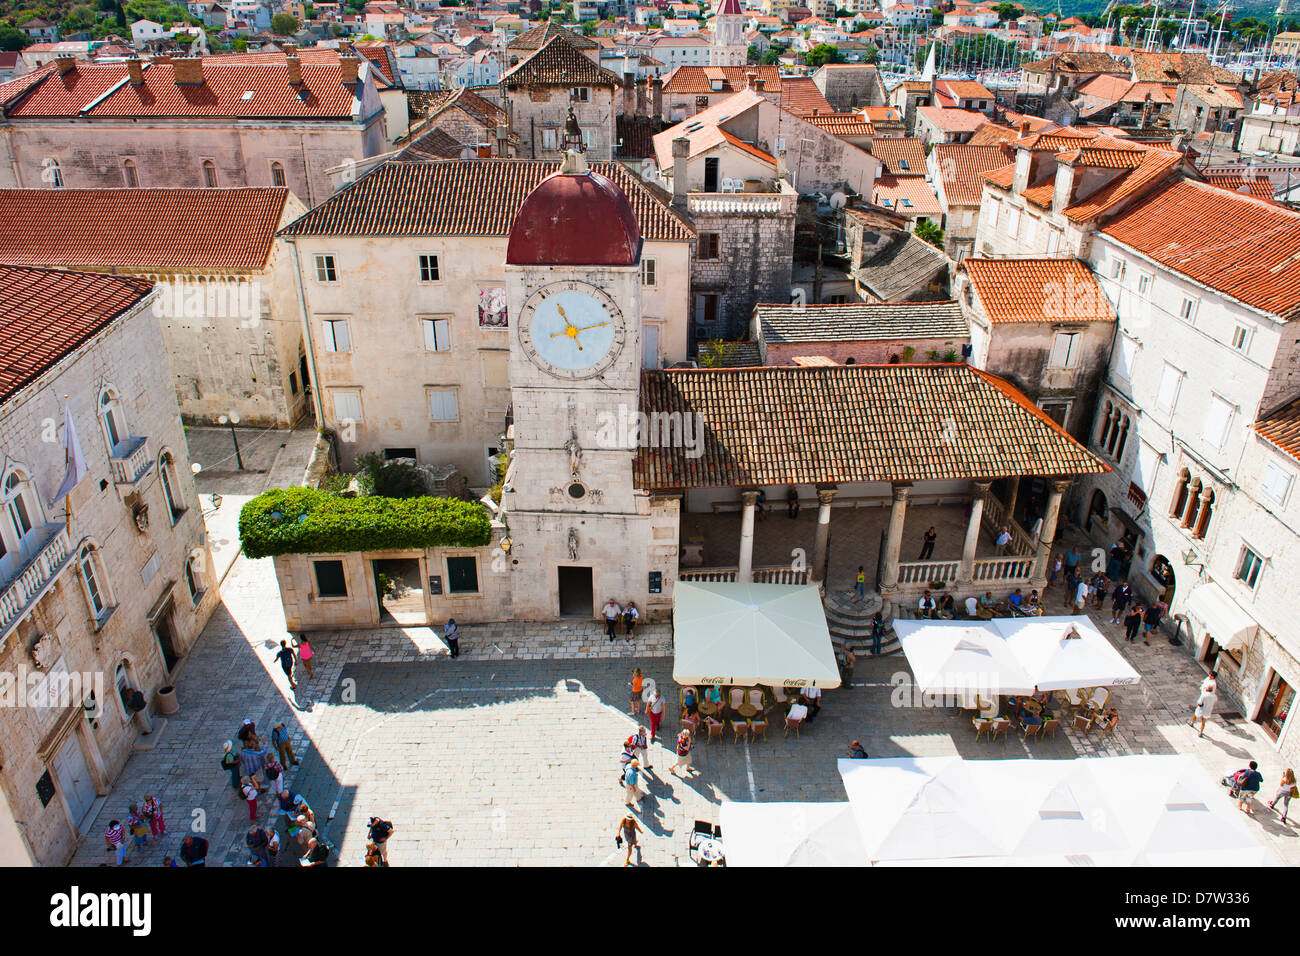 Loggia and St. Lawrence Square viewed from the Cathedral of St. Lawrence, Trogir, UNESCO World Heritage Site, Croatia - Stock Image